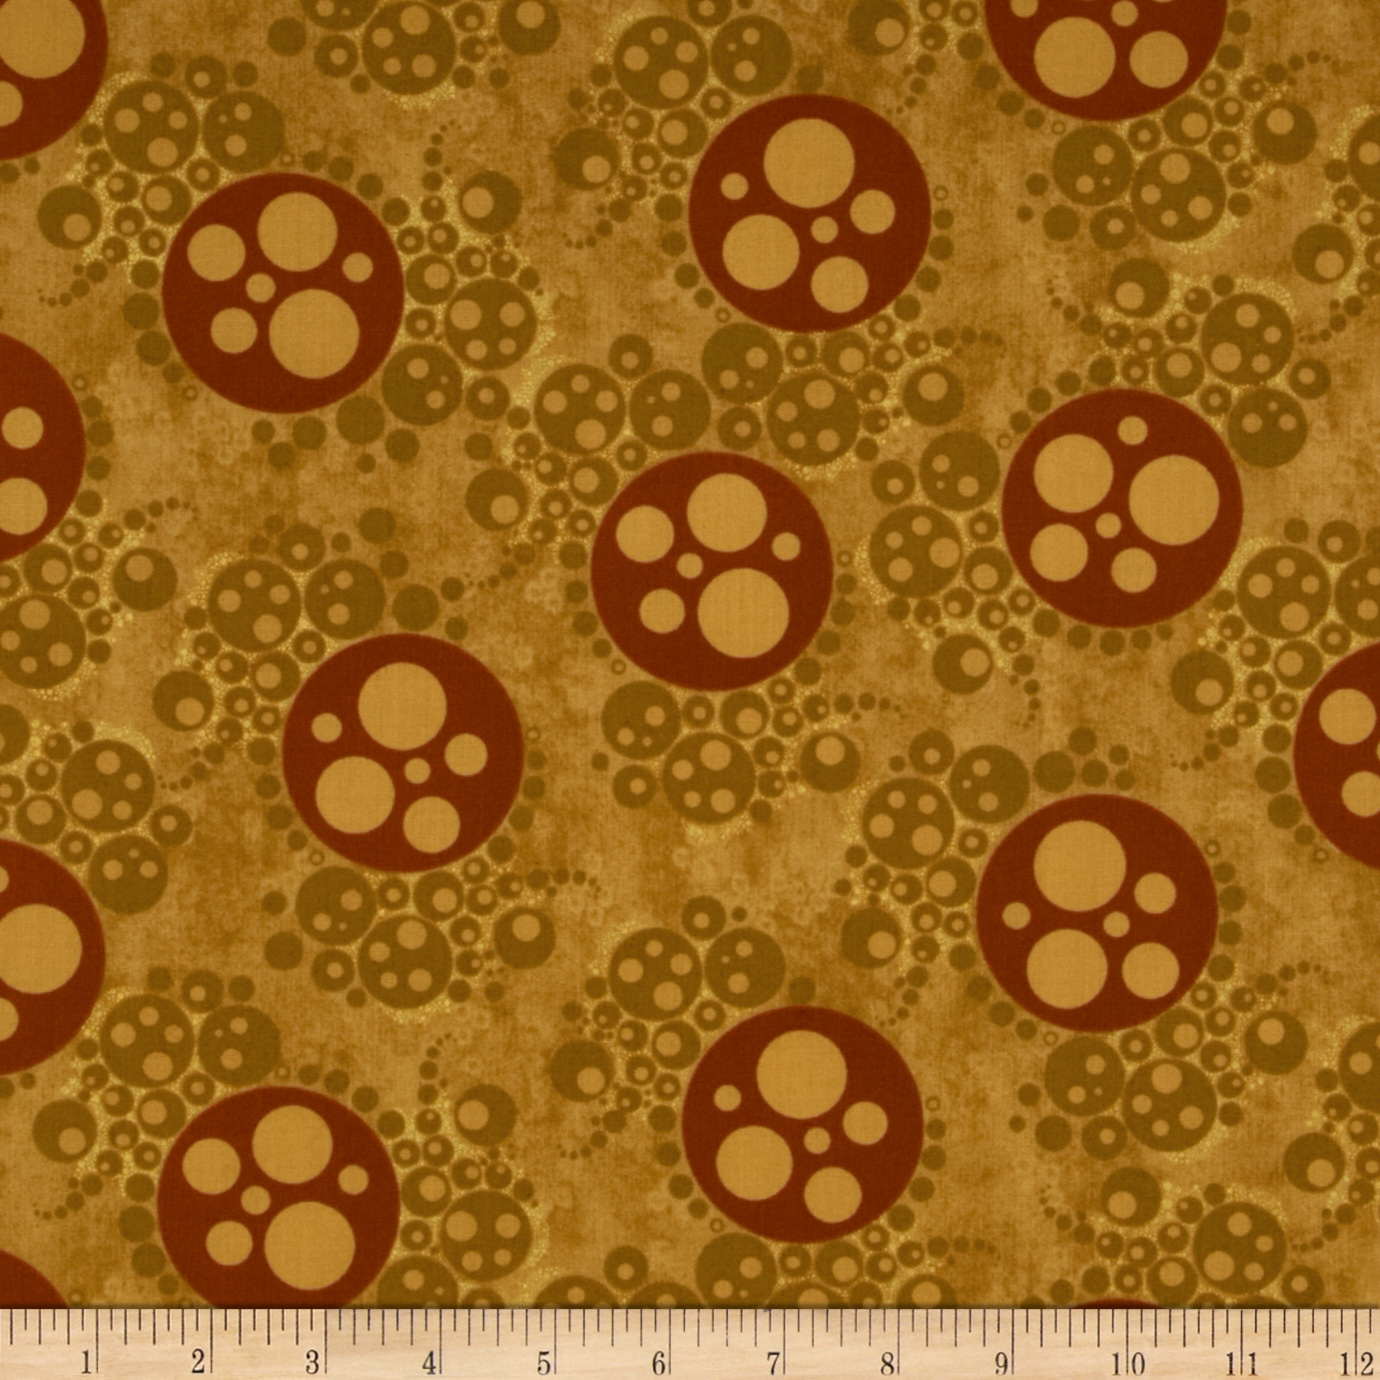 Lonni Rossi Metallic Bubbles Gold/Burgundy Fabric